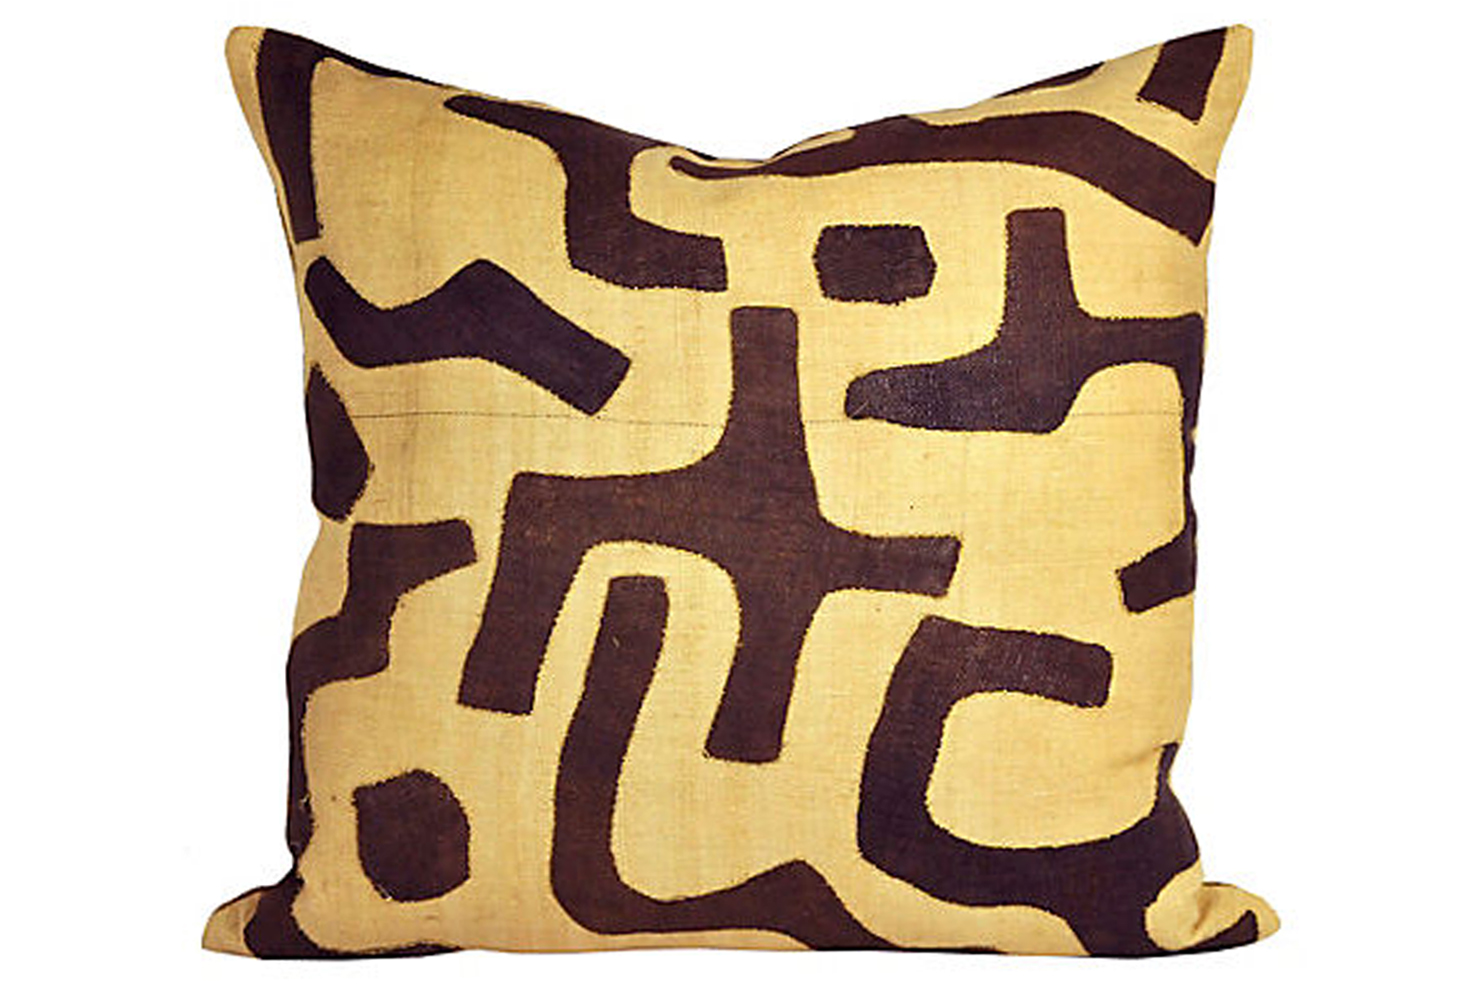 African Kuba Cloth Pillow Omero Home : african kuba cloth pillow i from www.omerohome.com size 1471 x 1000 jpeg 502kB